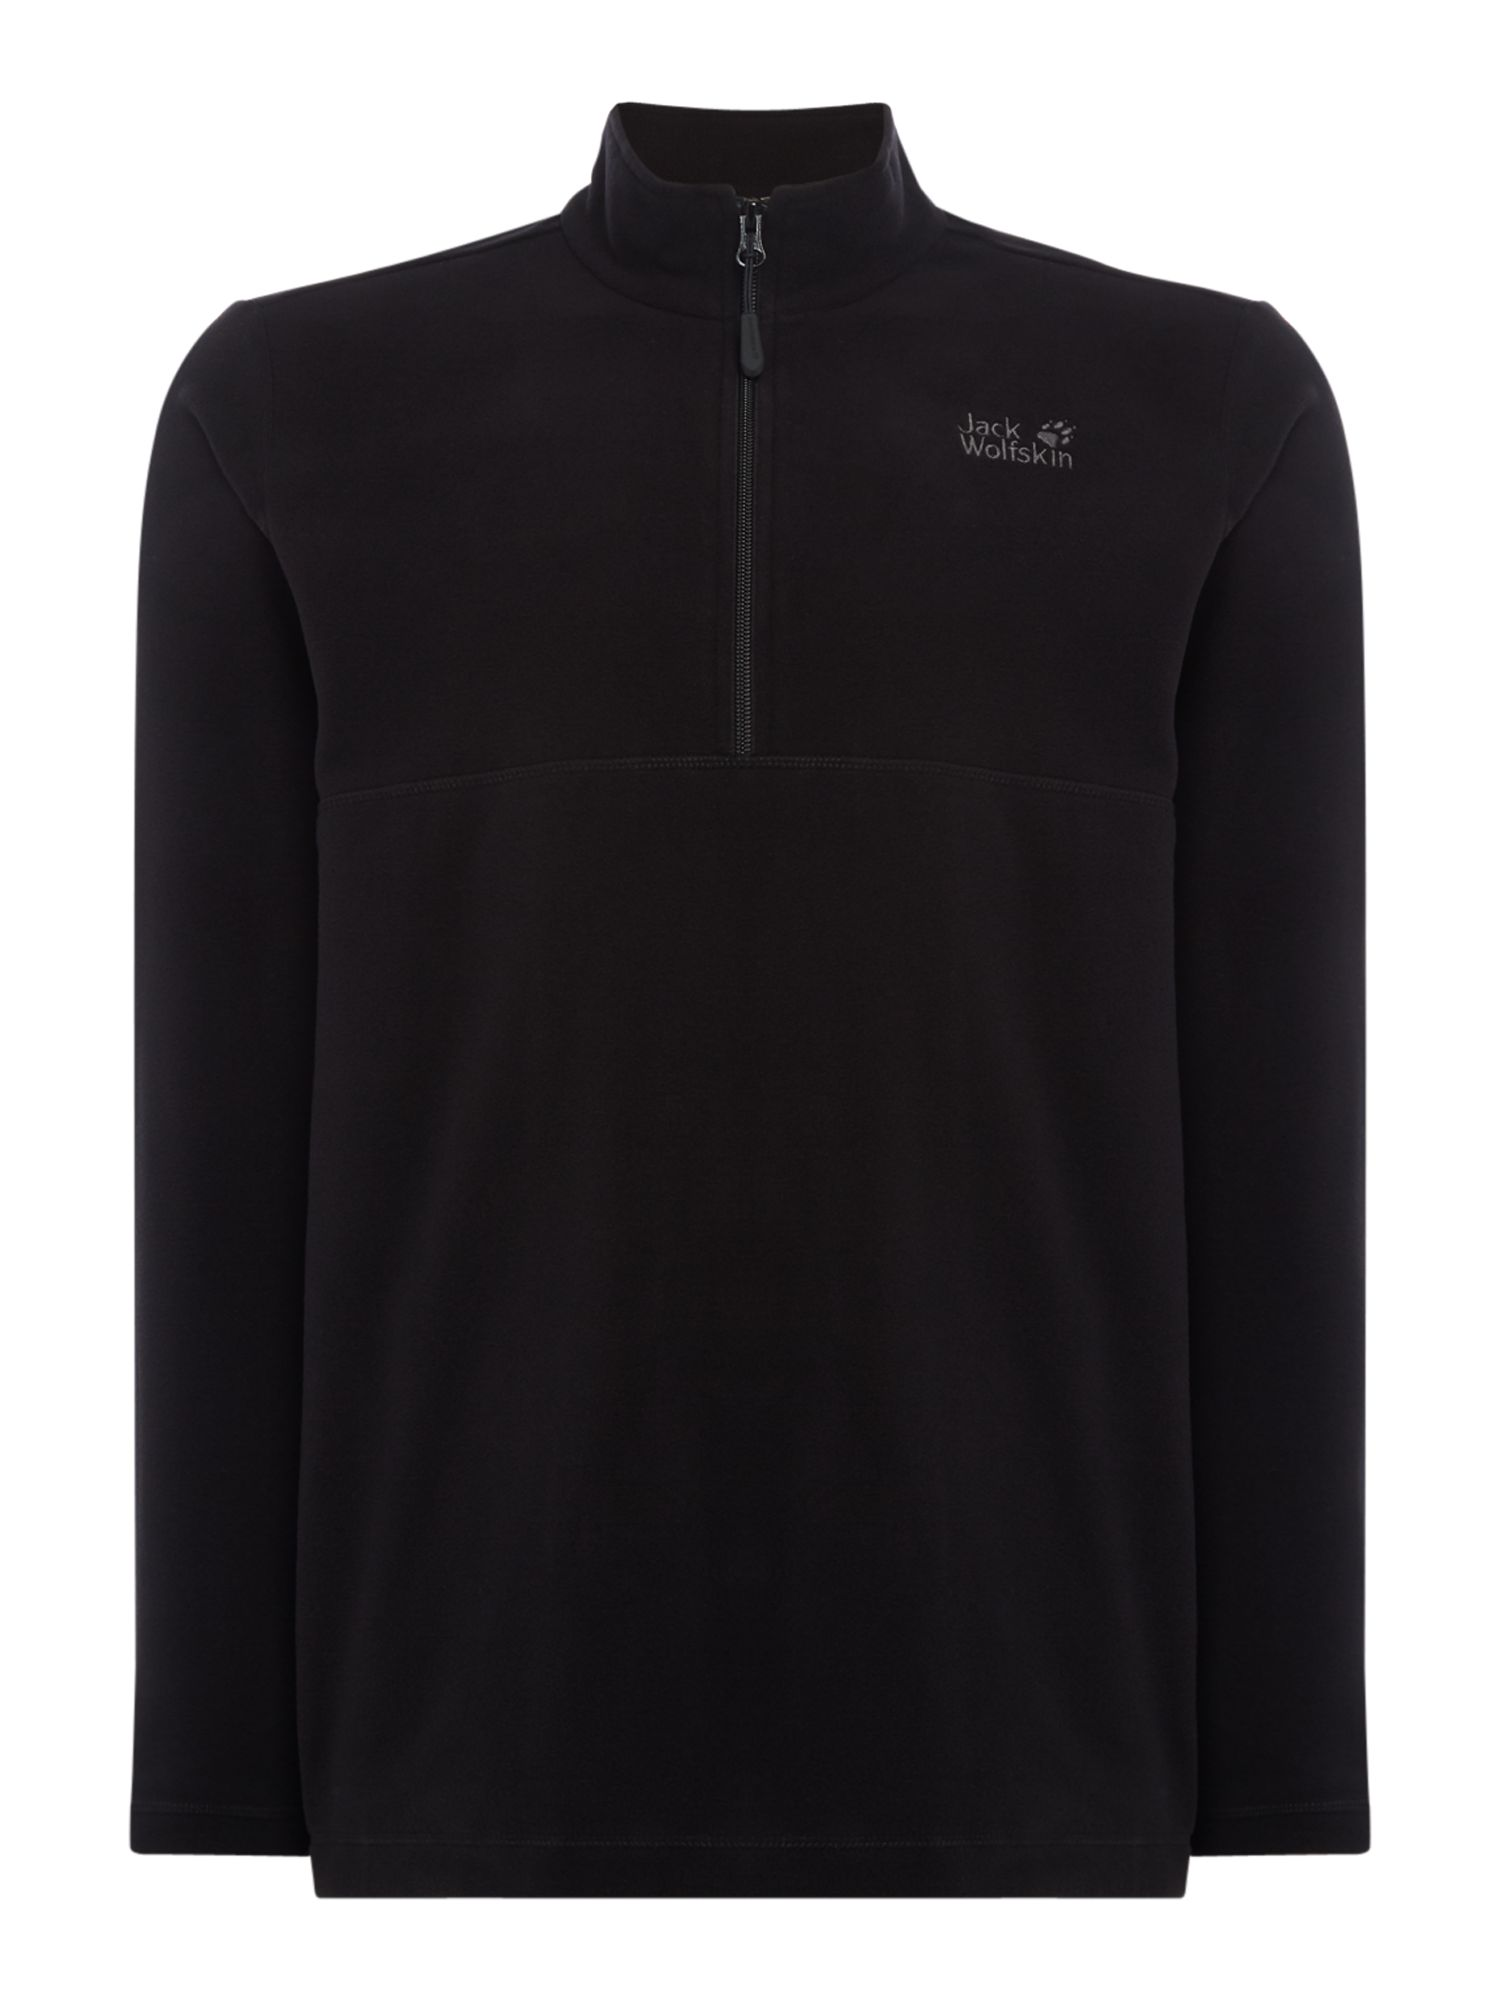 Men's Jack Wolfskin Gecko 1/4 Zip Fleece, Black